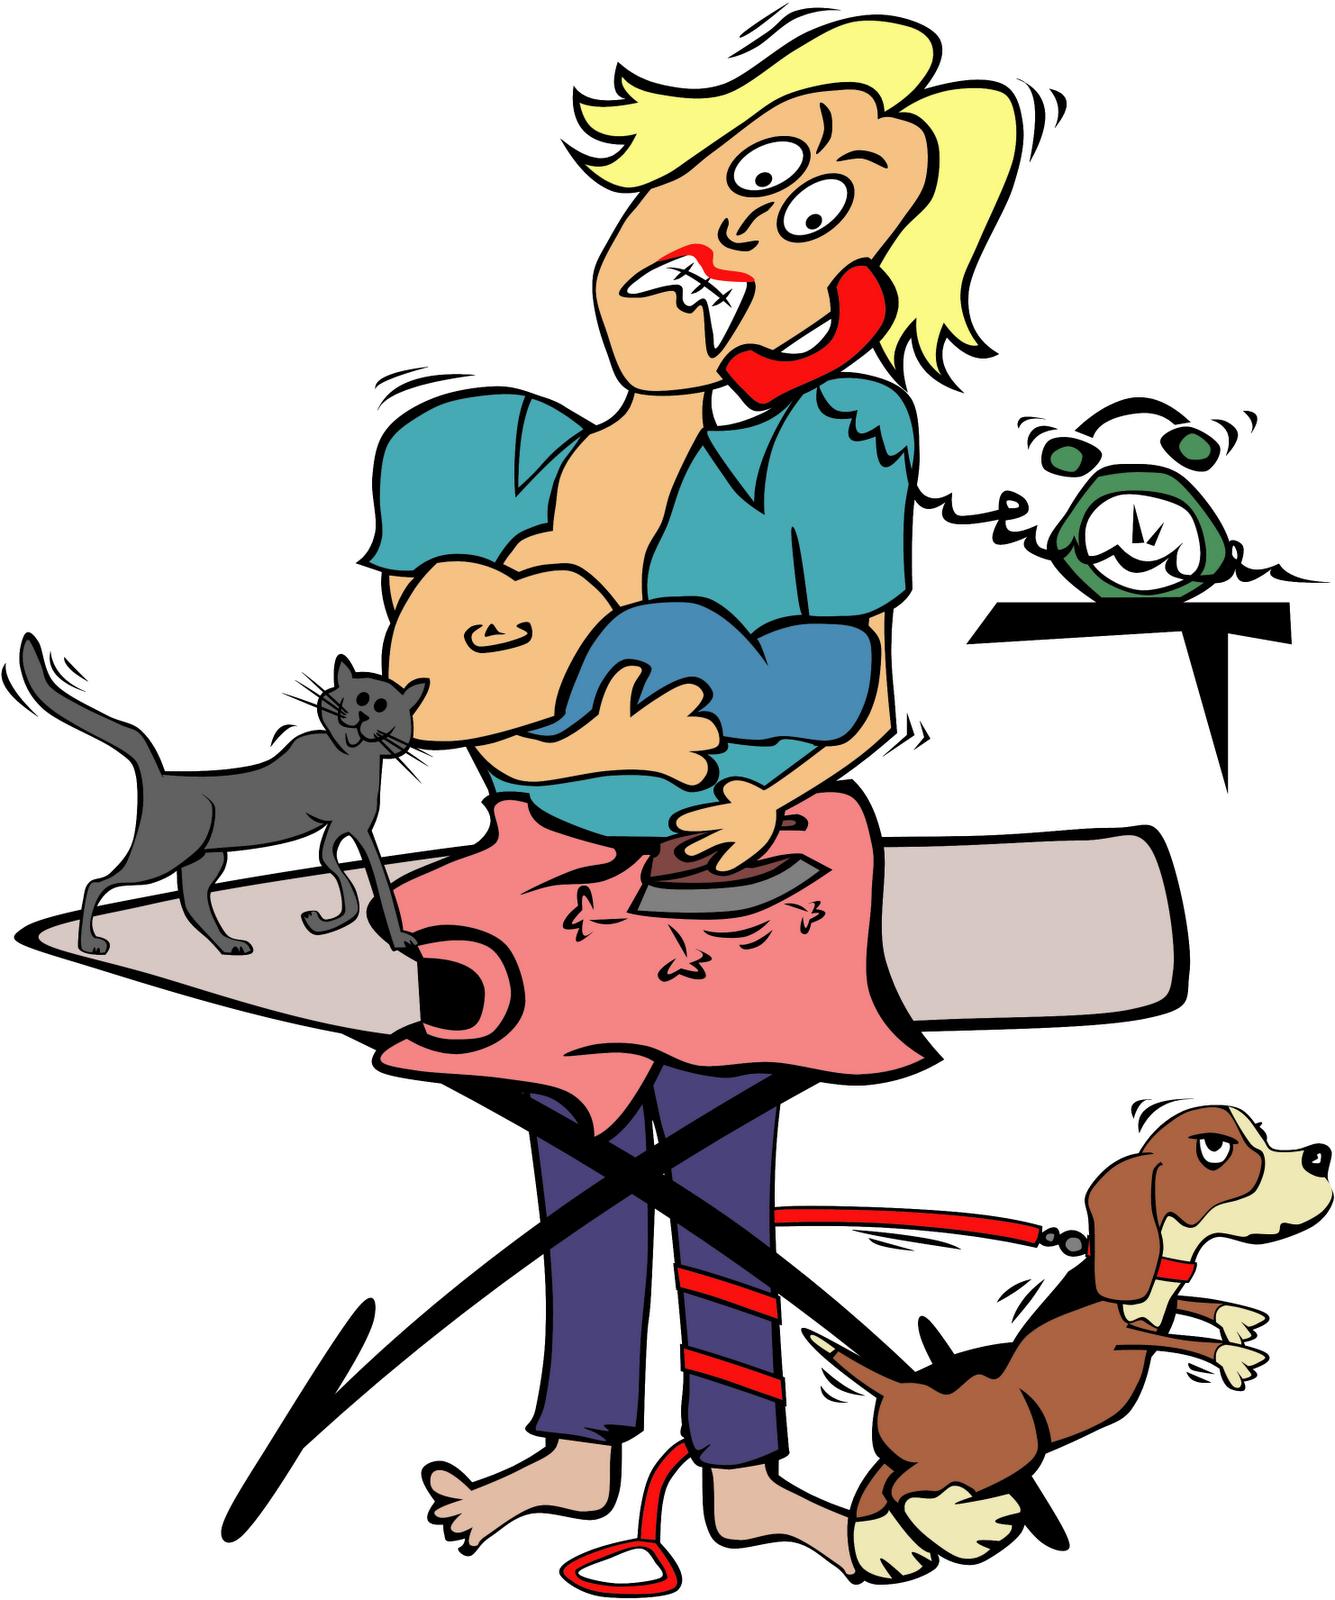 Free Clip Art Of Going Crazy - ClipArt Best